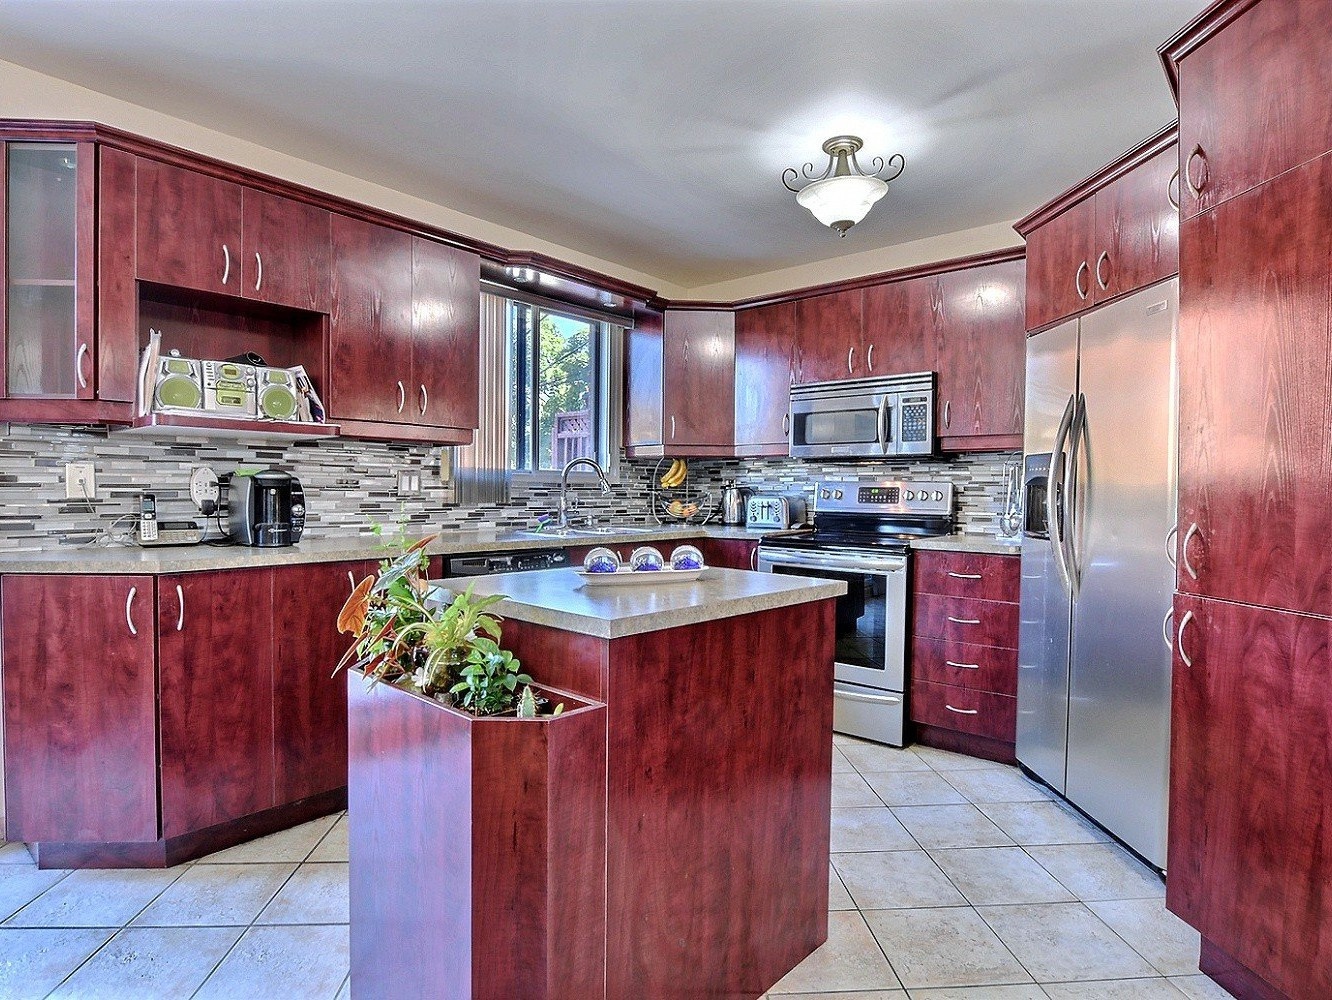 Mercier Hardwood Flooring Prices Of Two or More Storey sold 7797 Boul Maurice Duplessis Rivia¨re Des Intended for Interior Kitchen